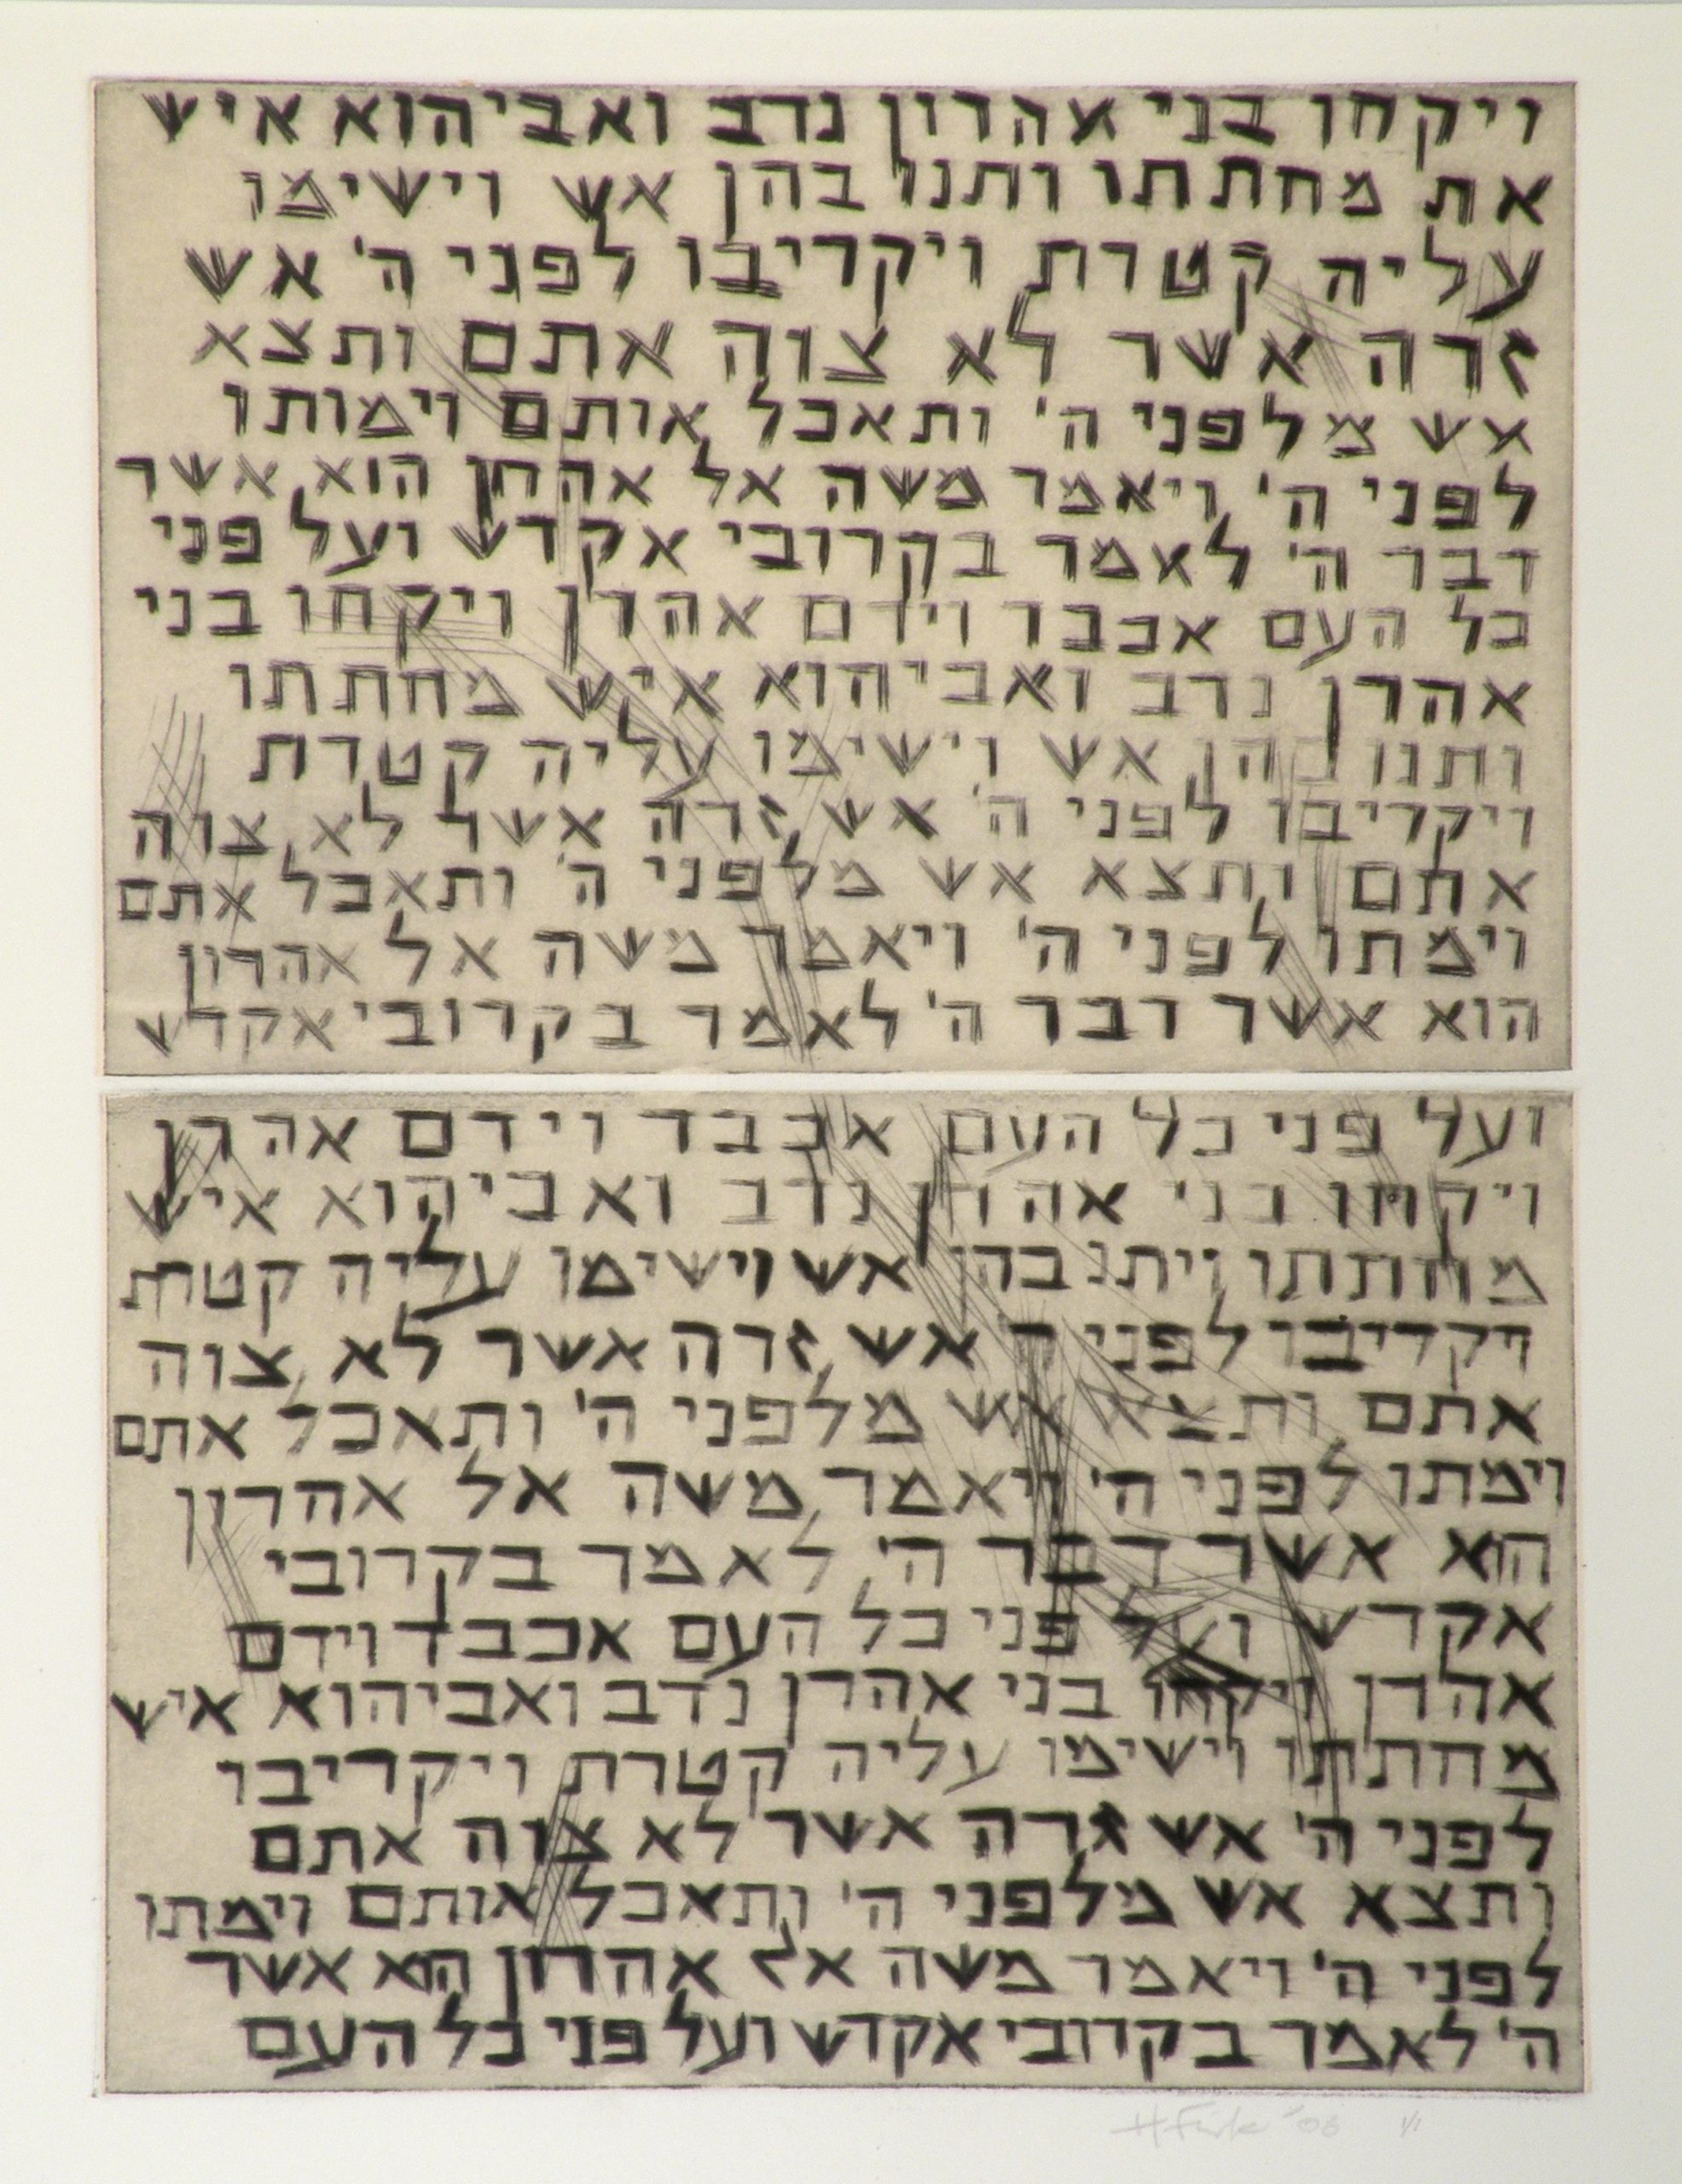 1 Nadavihu series engraving print, 16 x12, Hebrew bible, about Aaron's sons who brought strange fire to the Lord, and were consumed